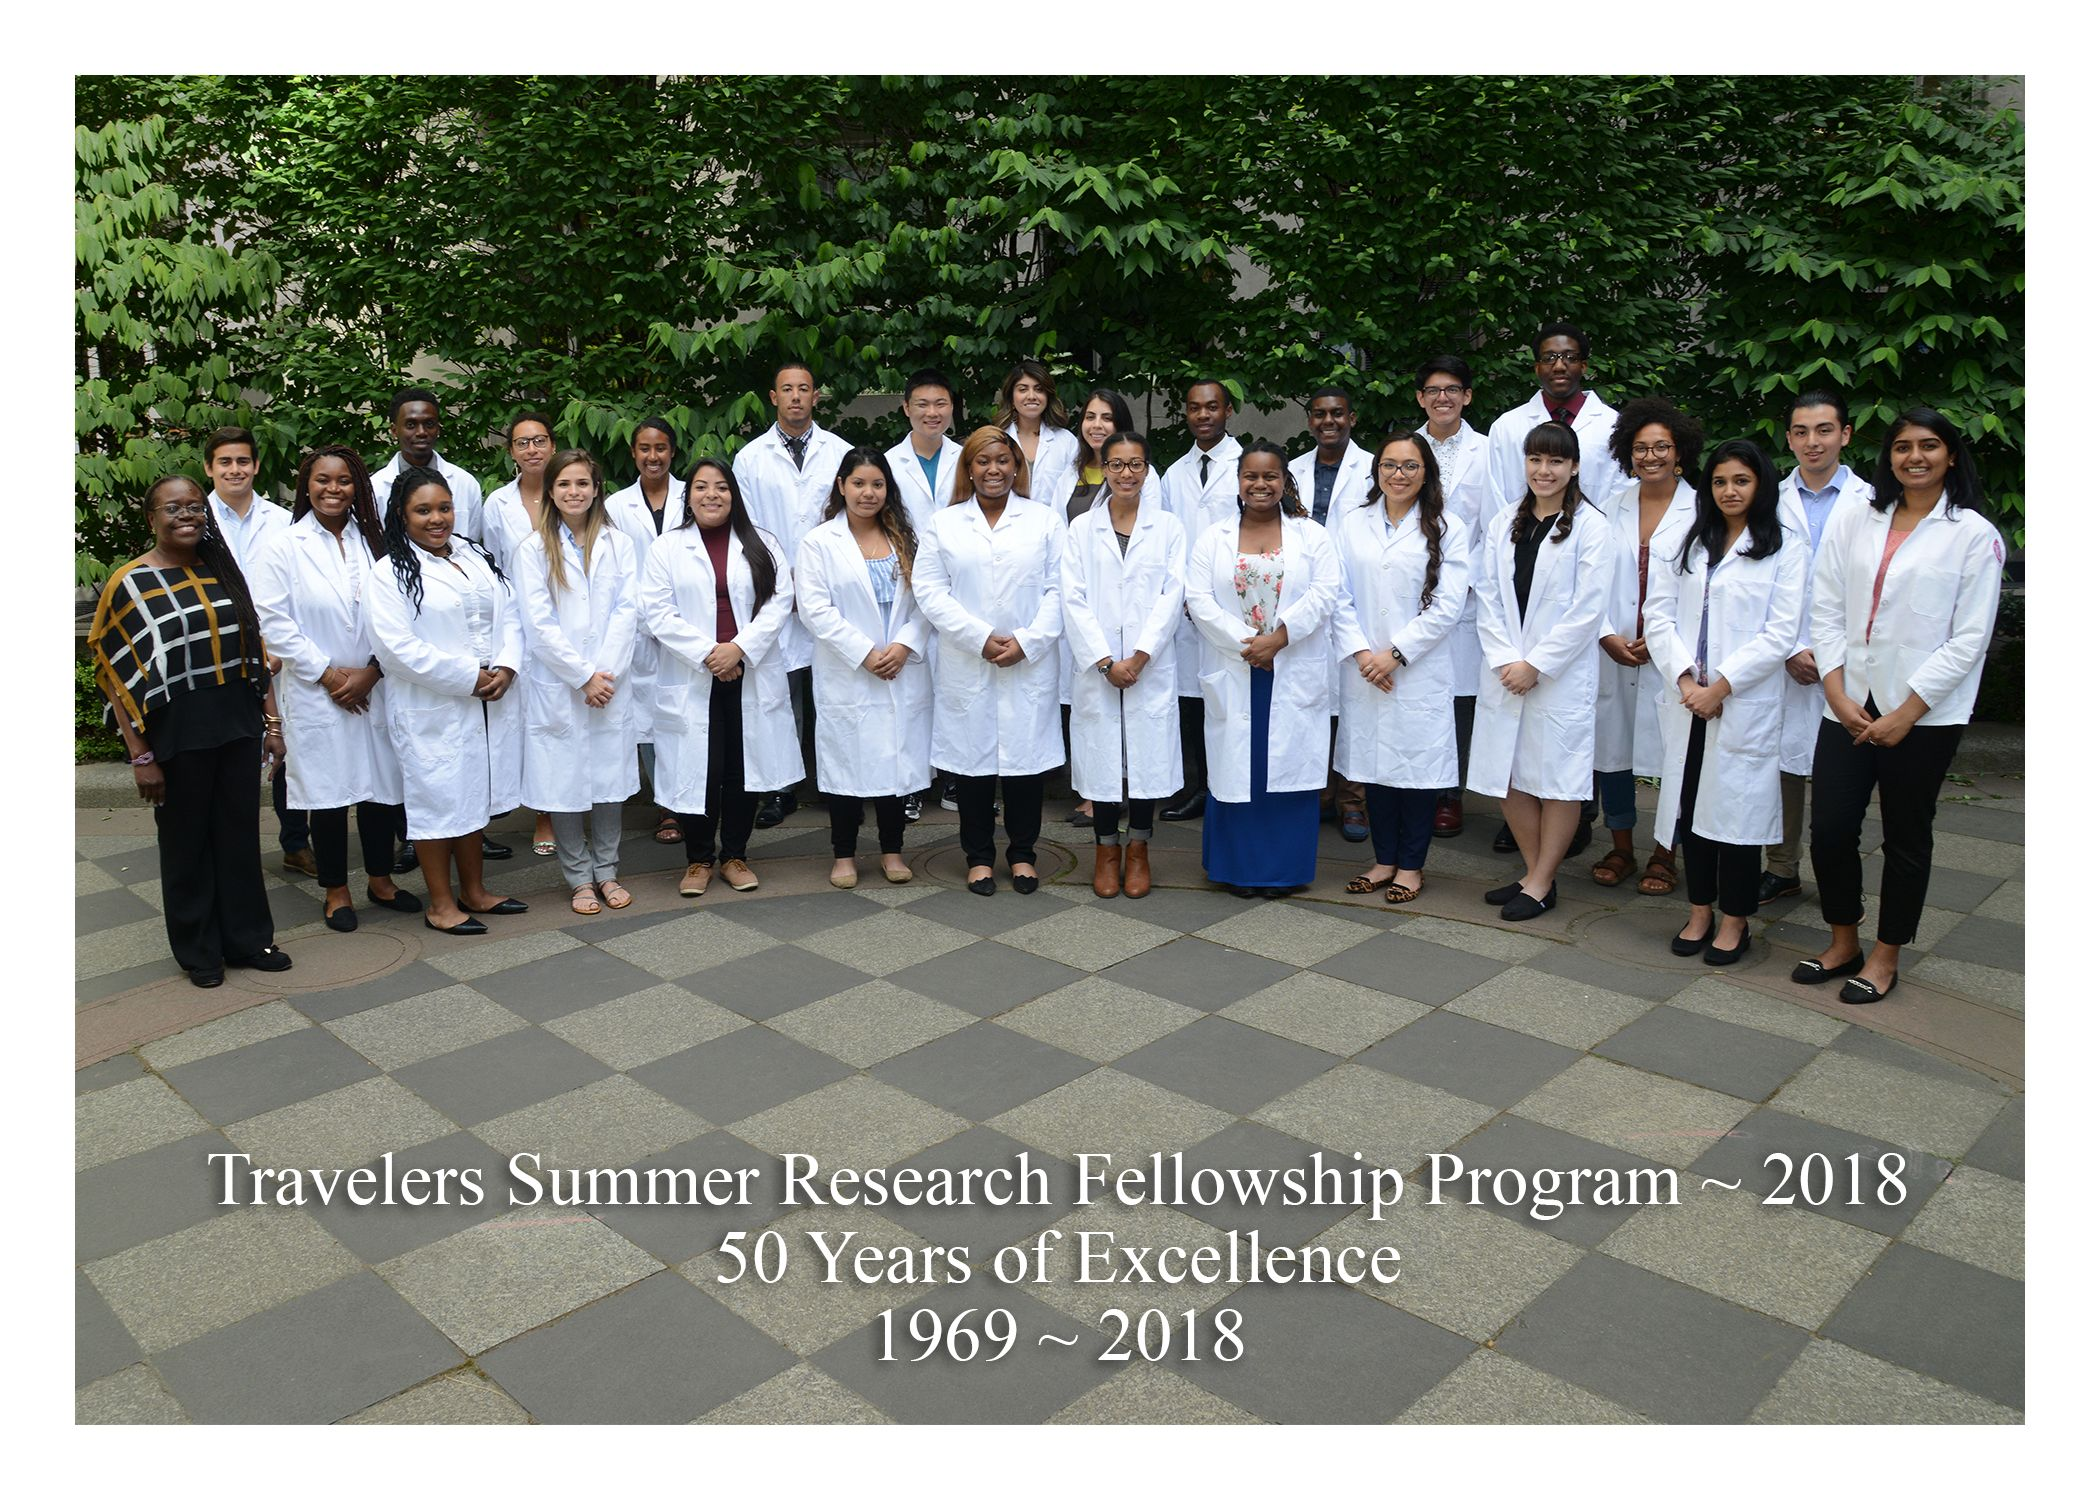 Travelers Summer Research Fellowship Program | Medical College